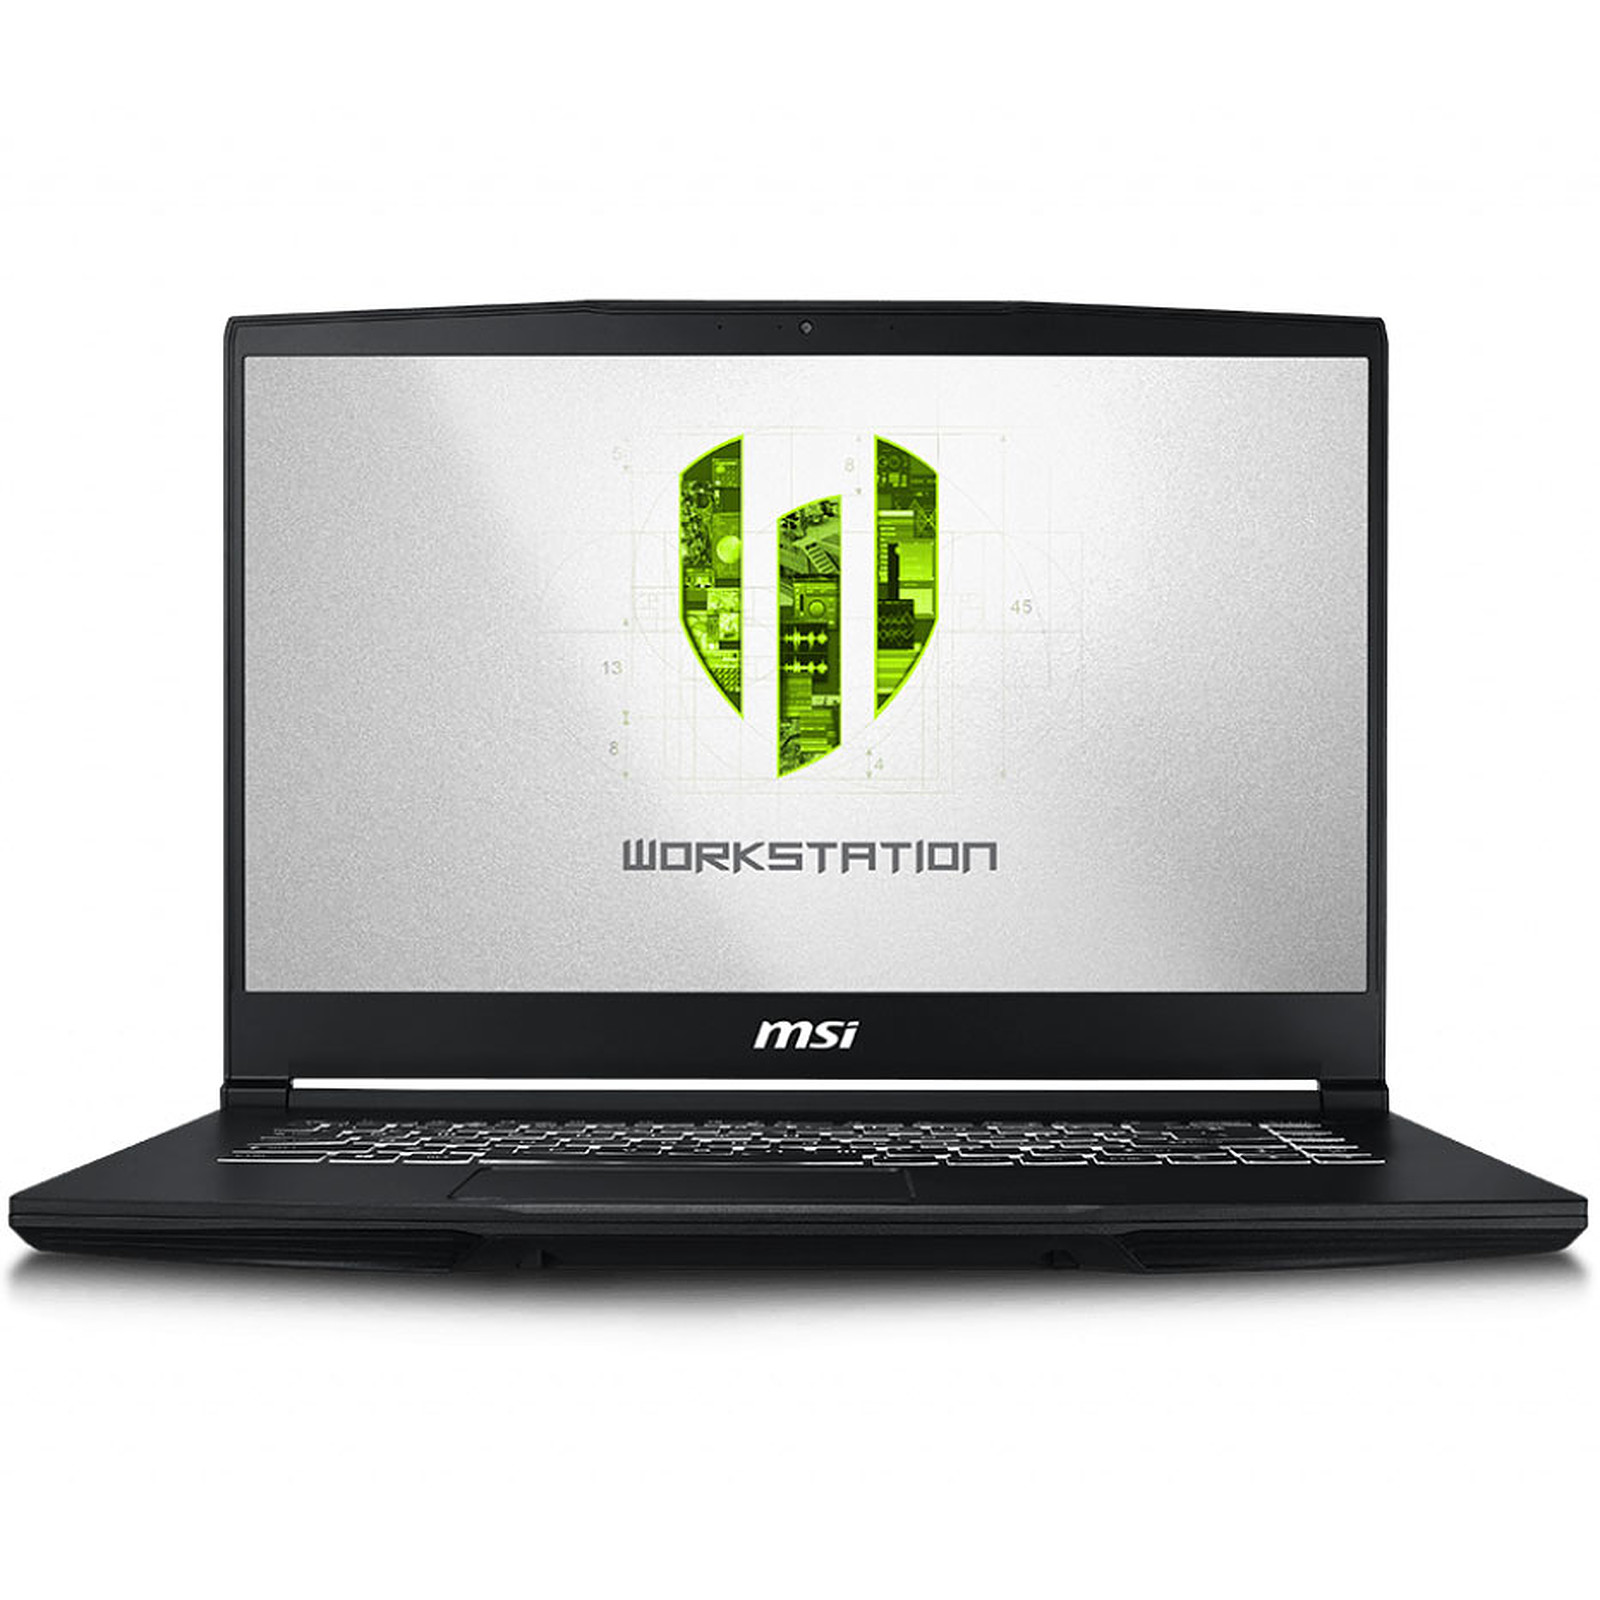 MSI WP65 9TH-412FR Workstation